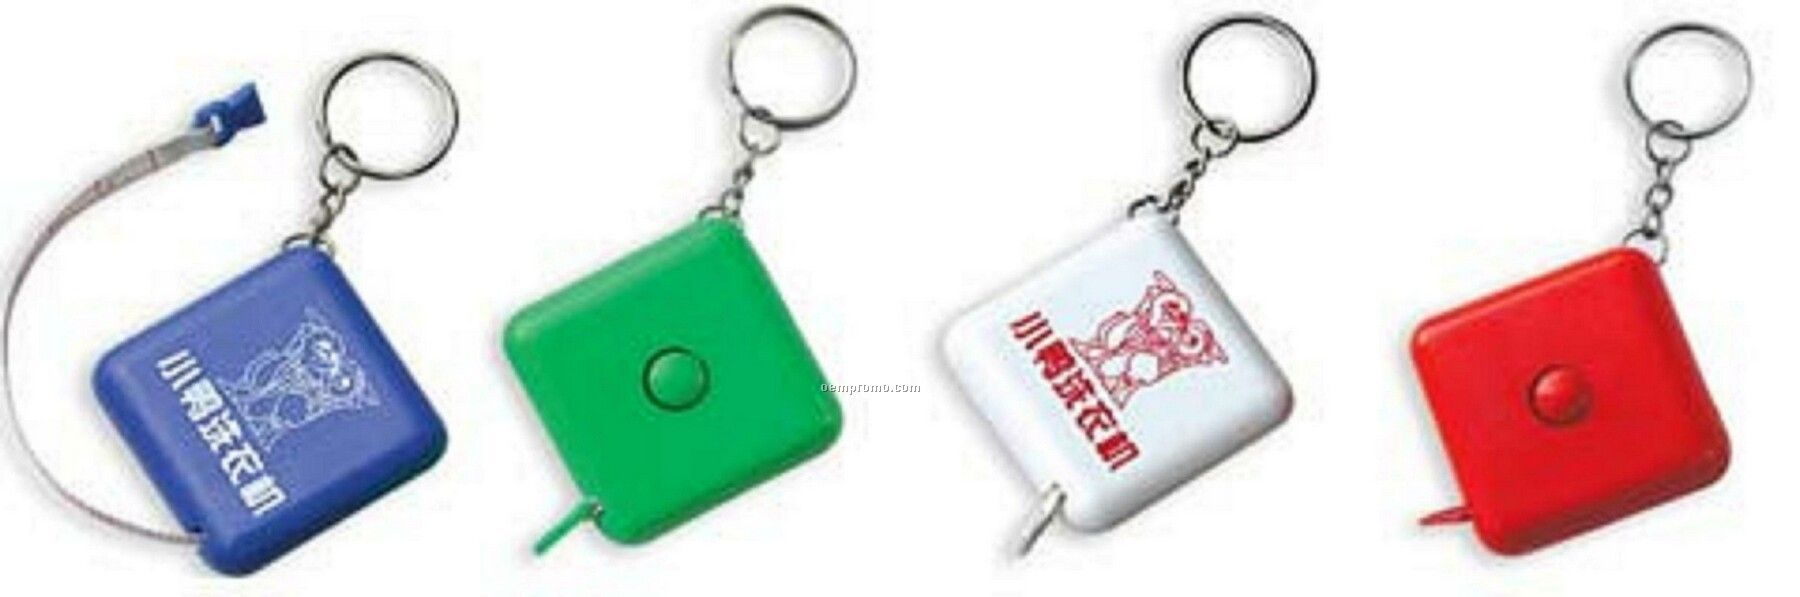 Square Shape Tape Measure With Key Holder